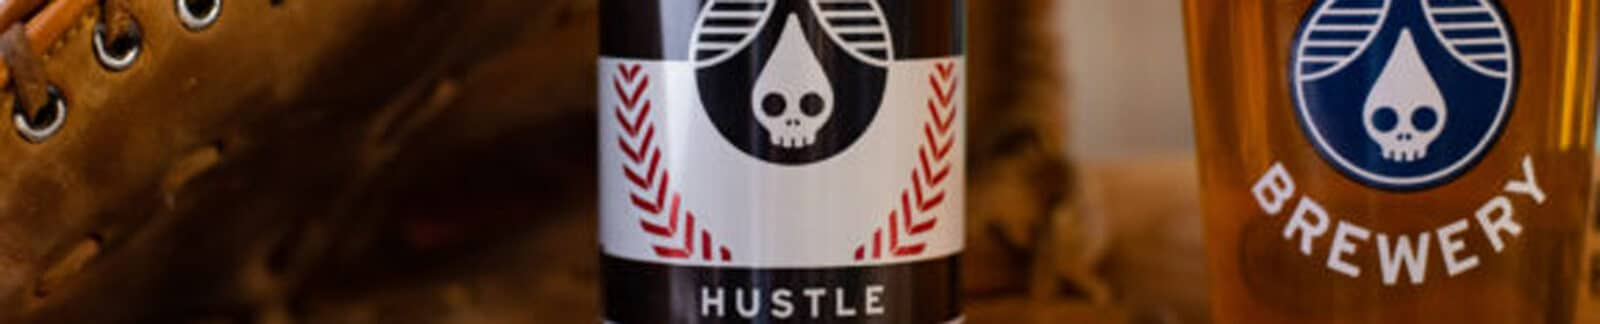 Hustle IPA header